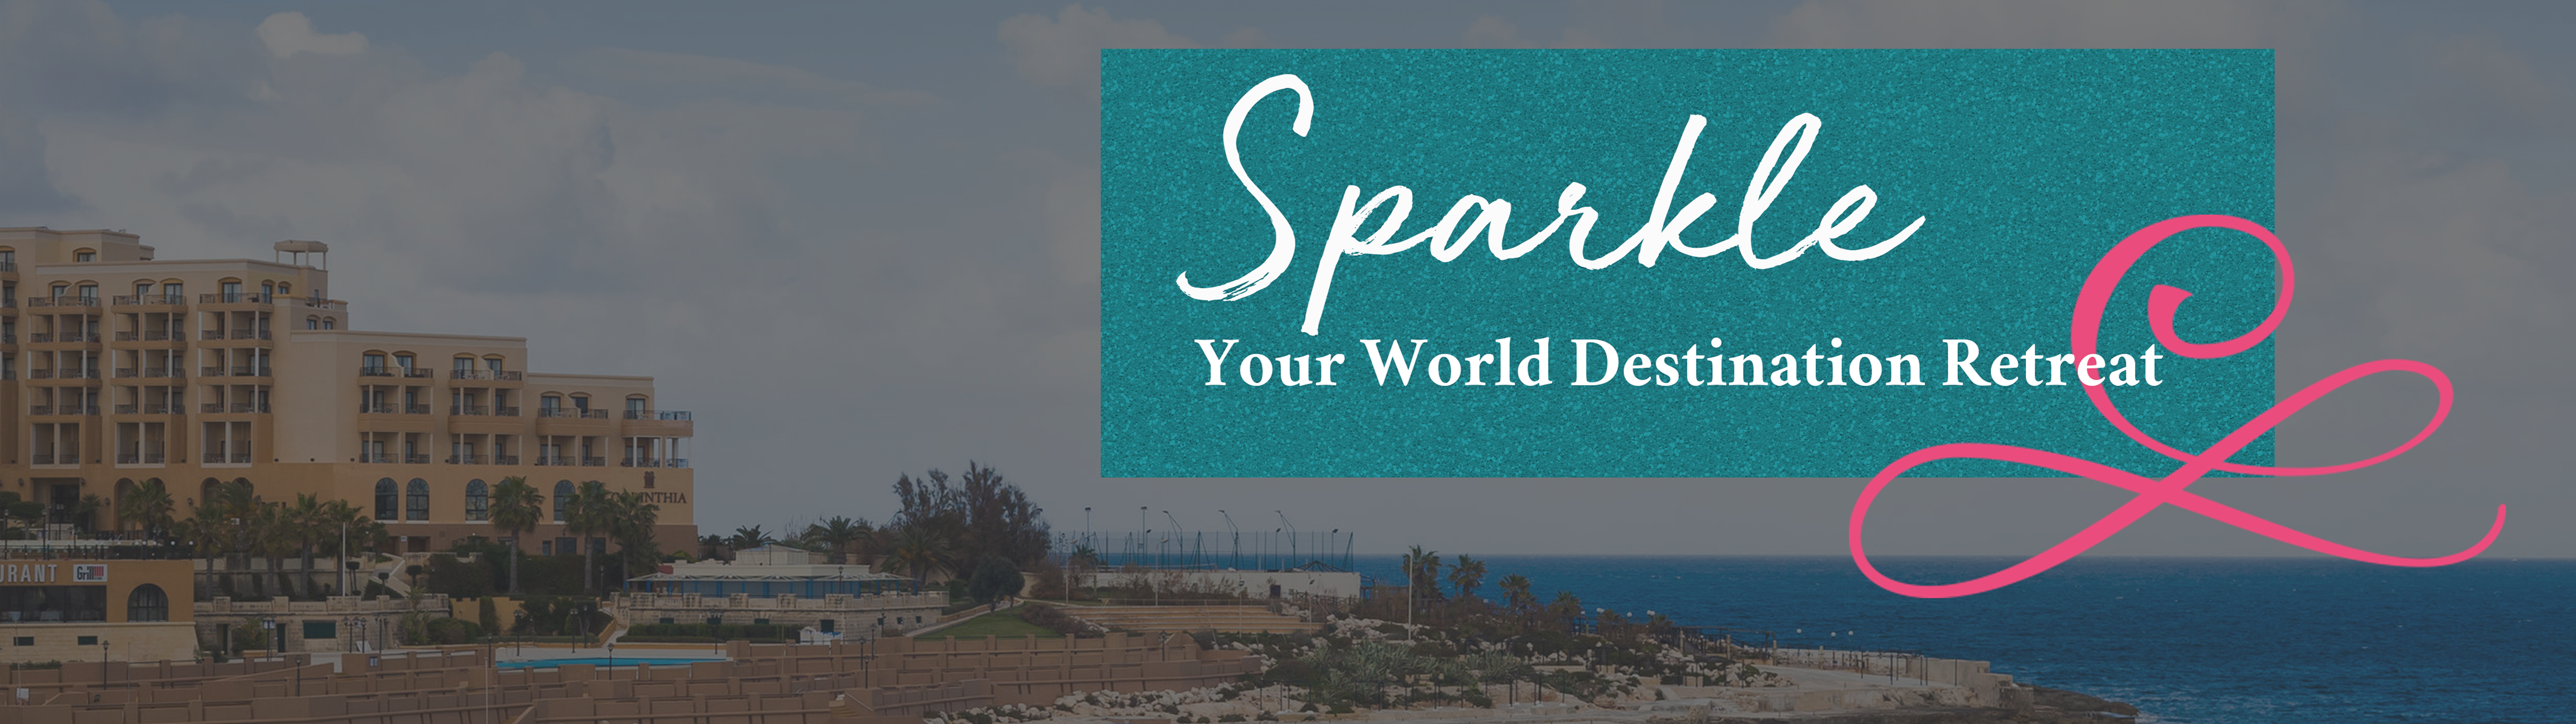 Sparkle Your World Destination Retreat